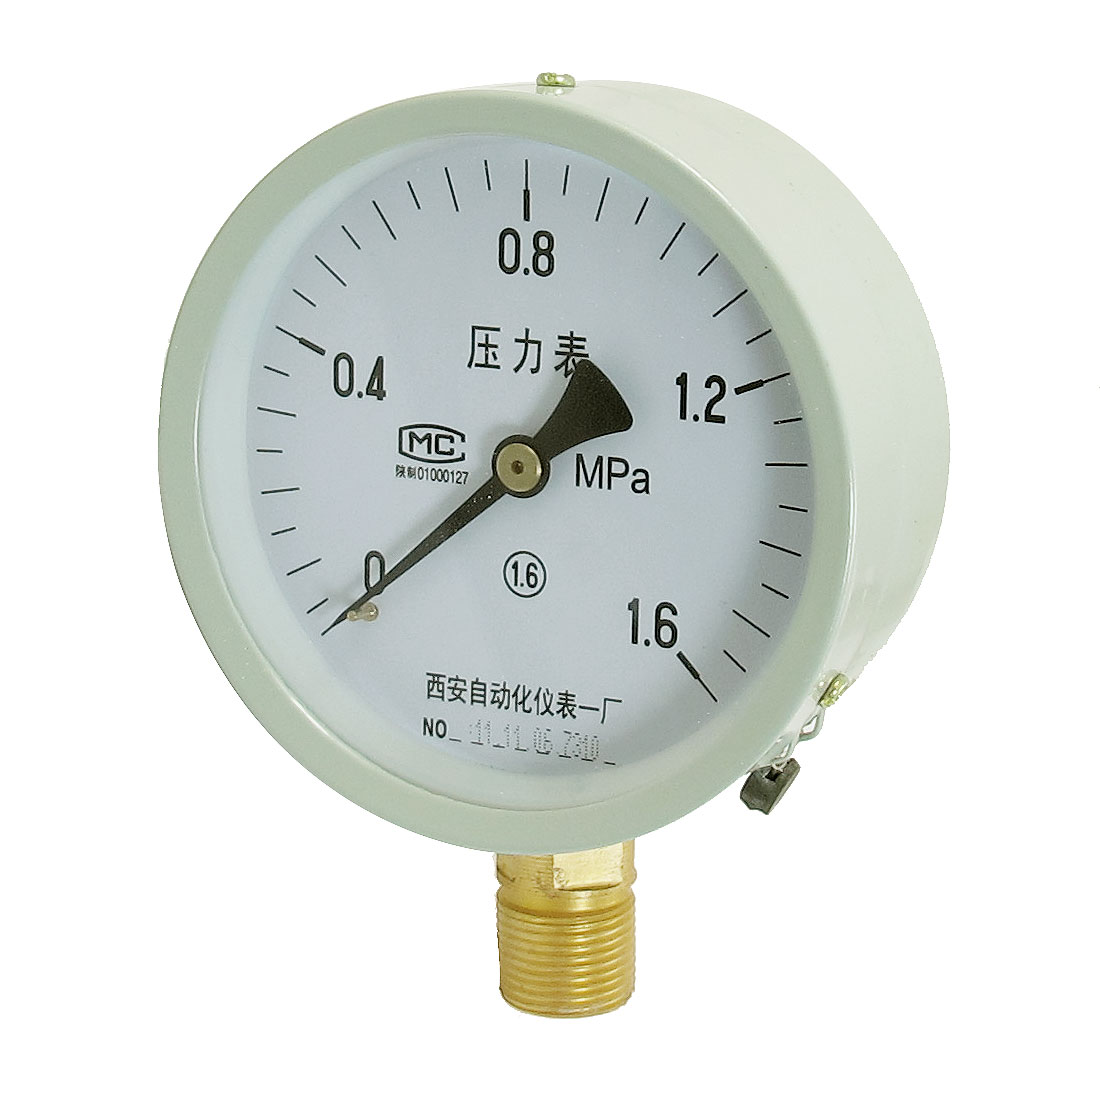 20mm Threaded Round Connector Liquid Pressure Gauge 0-1.6Mpa Y-100